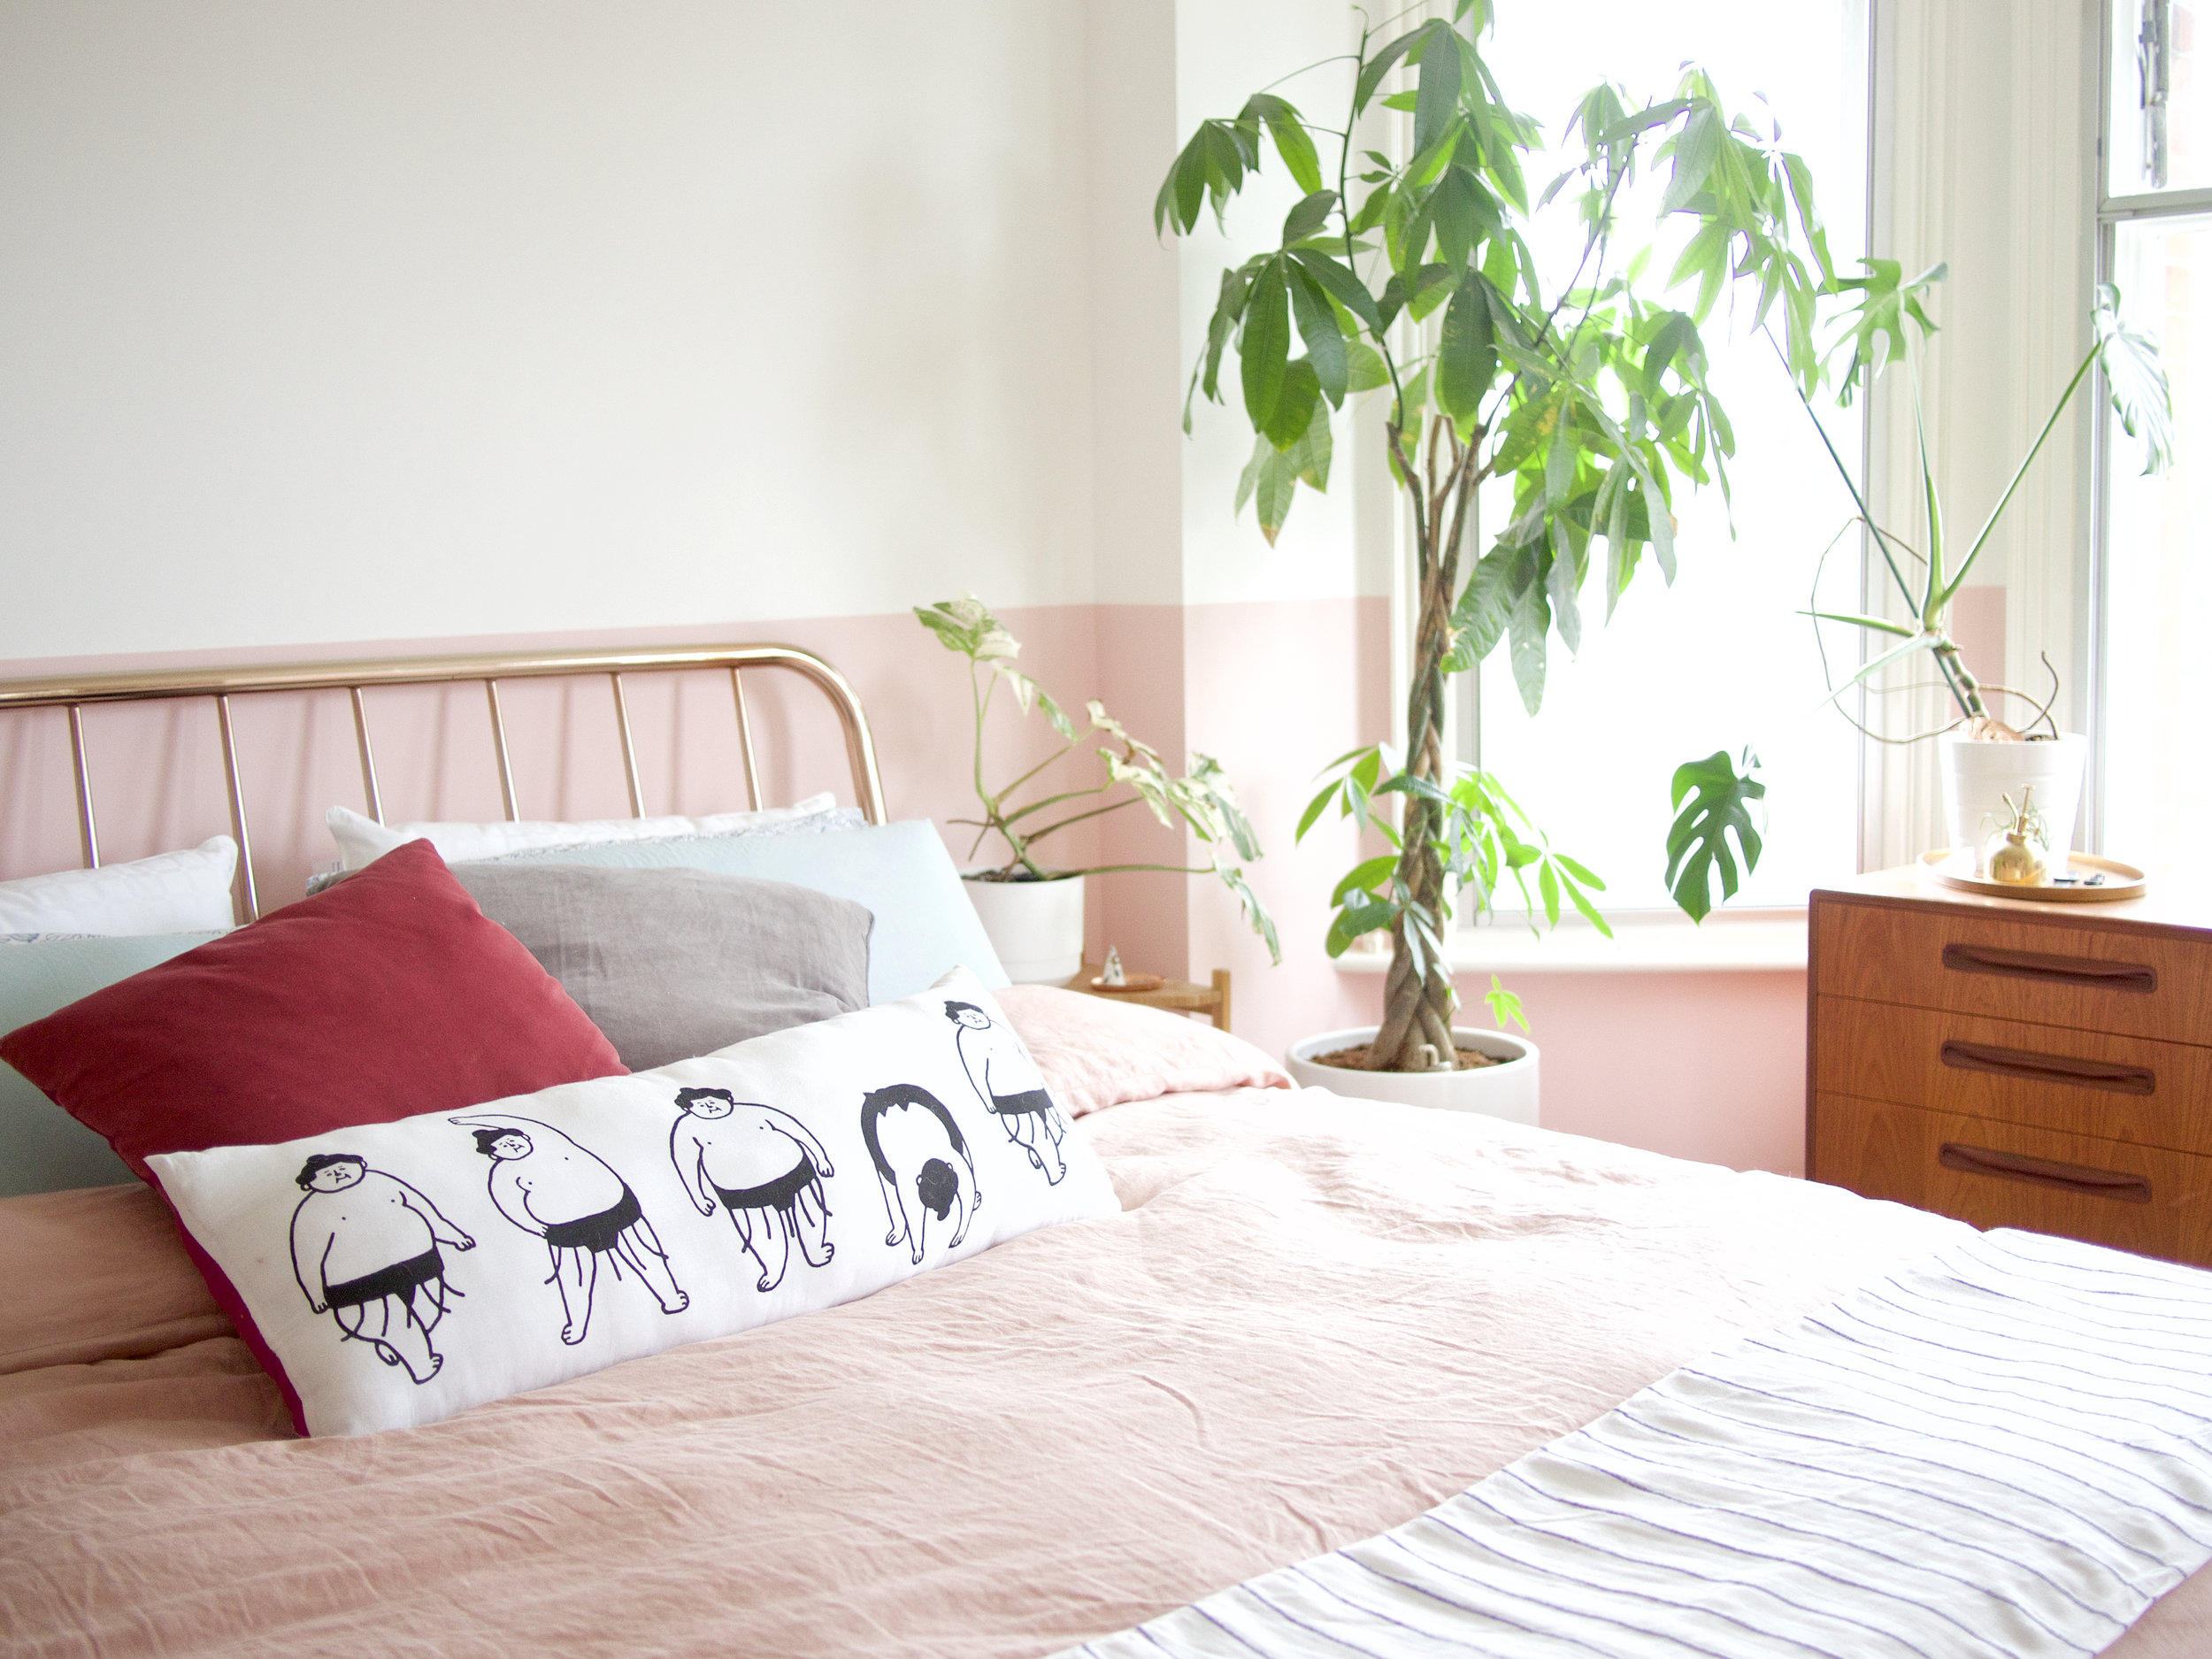 onrshop || bedroom makeover